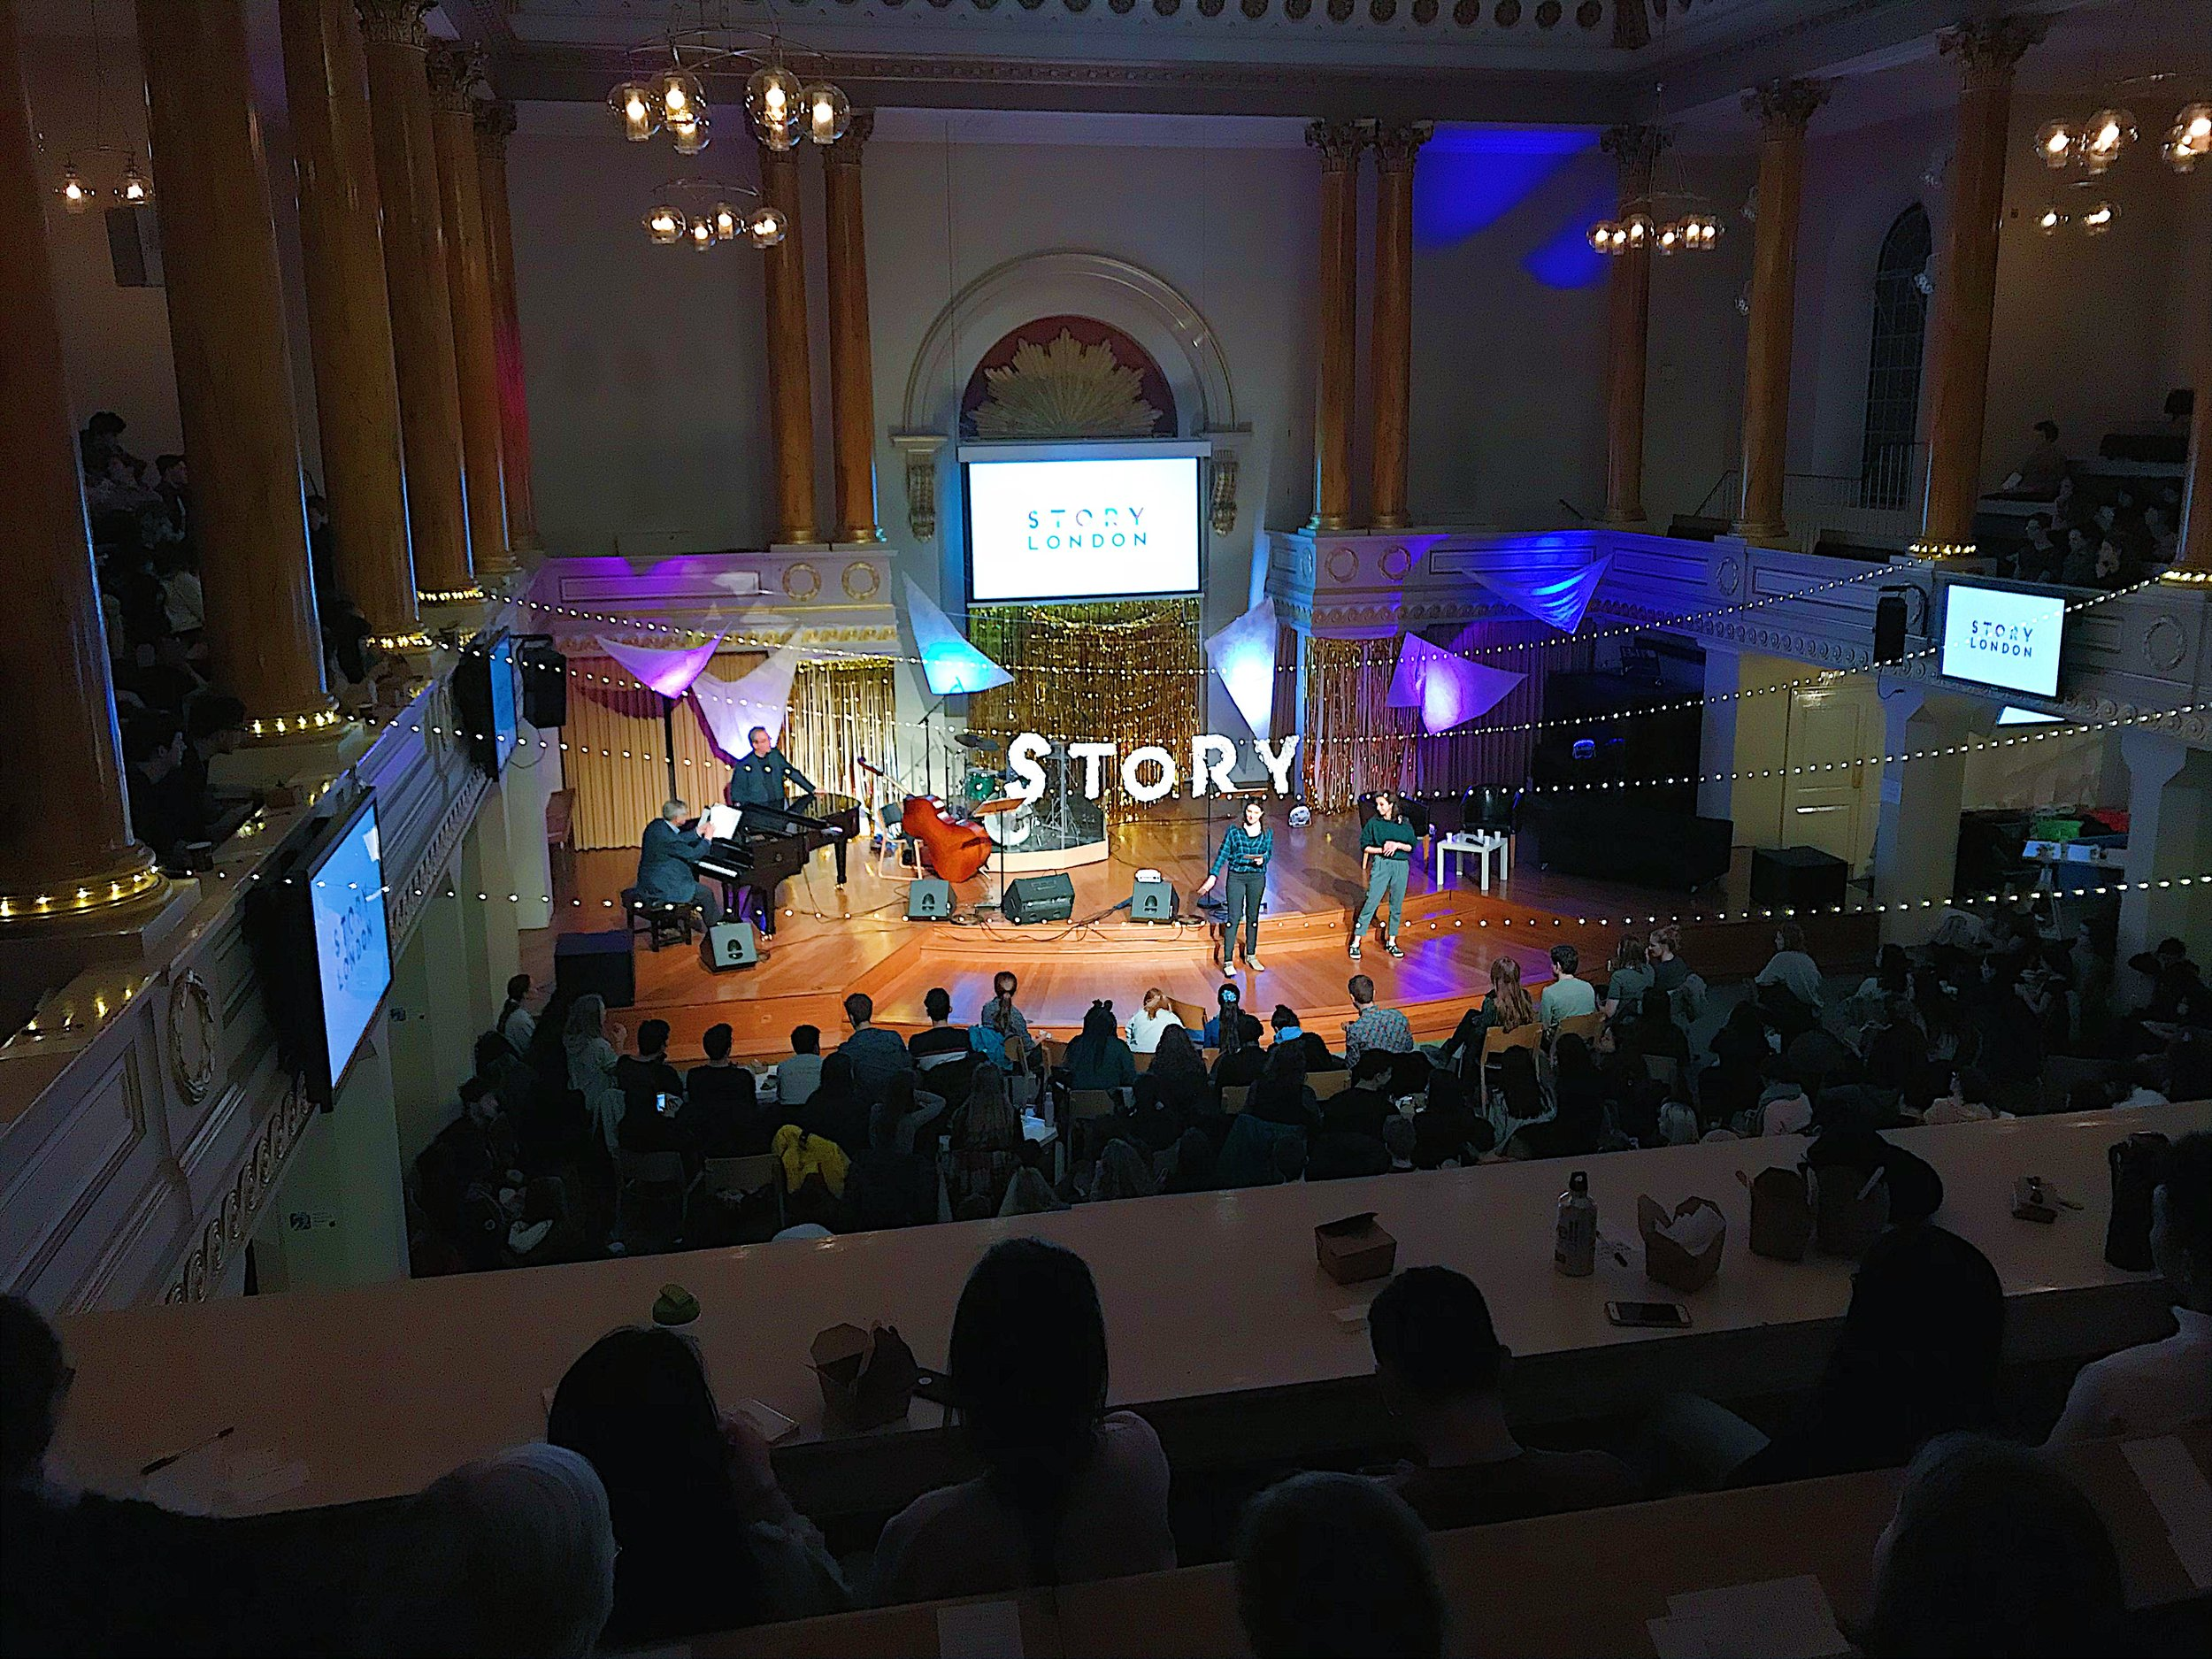 Our UCCF week in January. It was so encouraging seeing all the London CU's coming together to worship God.